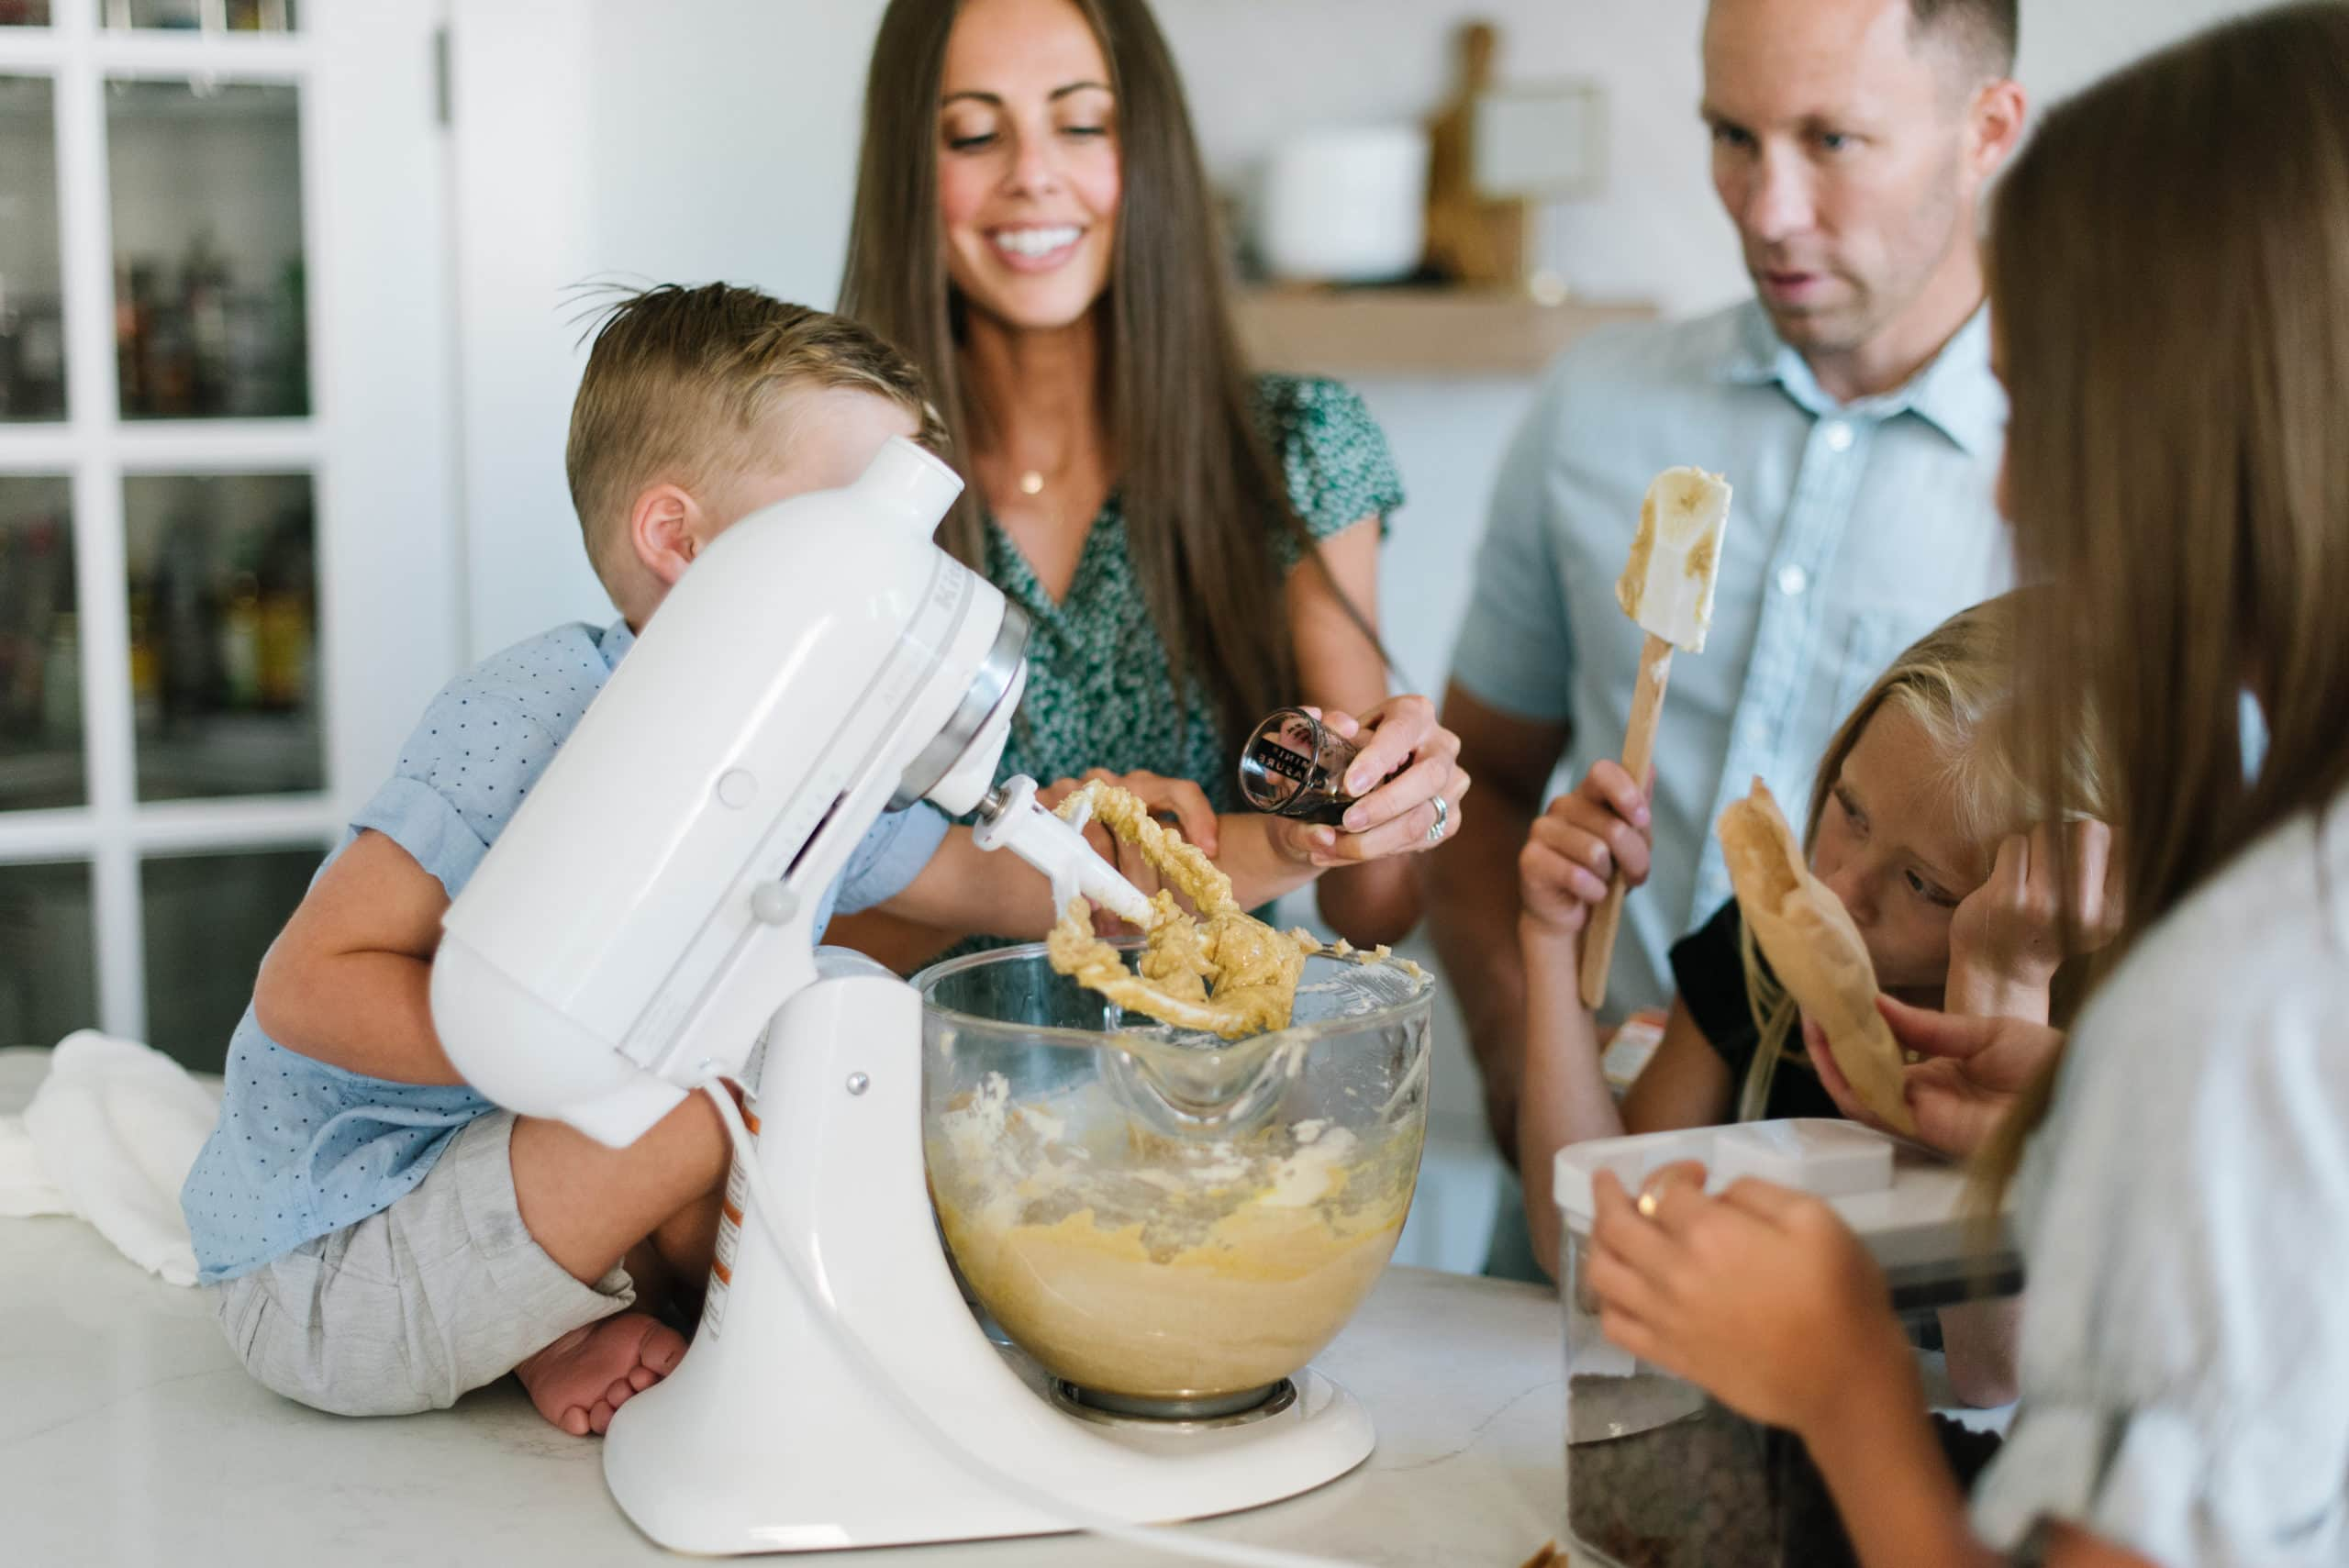 A family standing around a KitchenAid mixer making chocolate chip cookies.